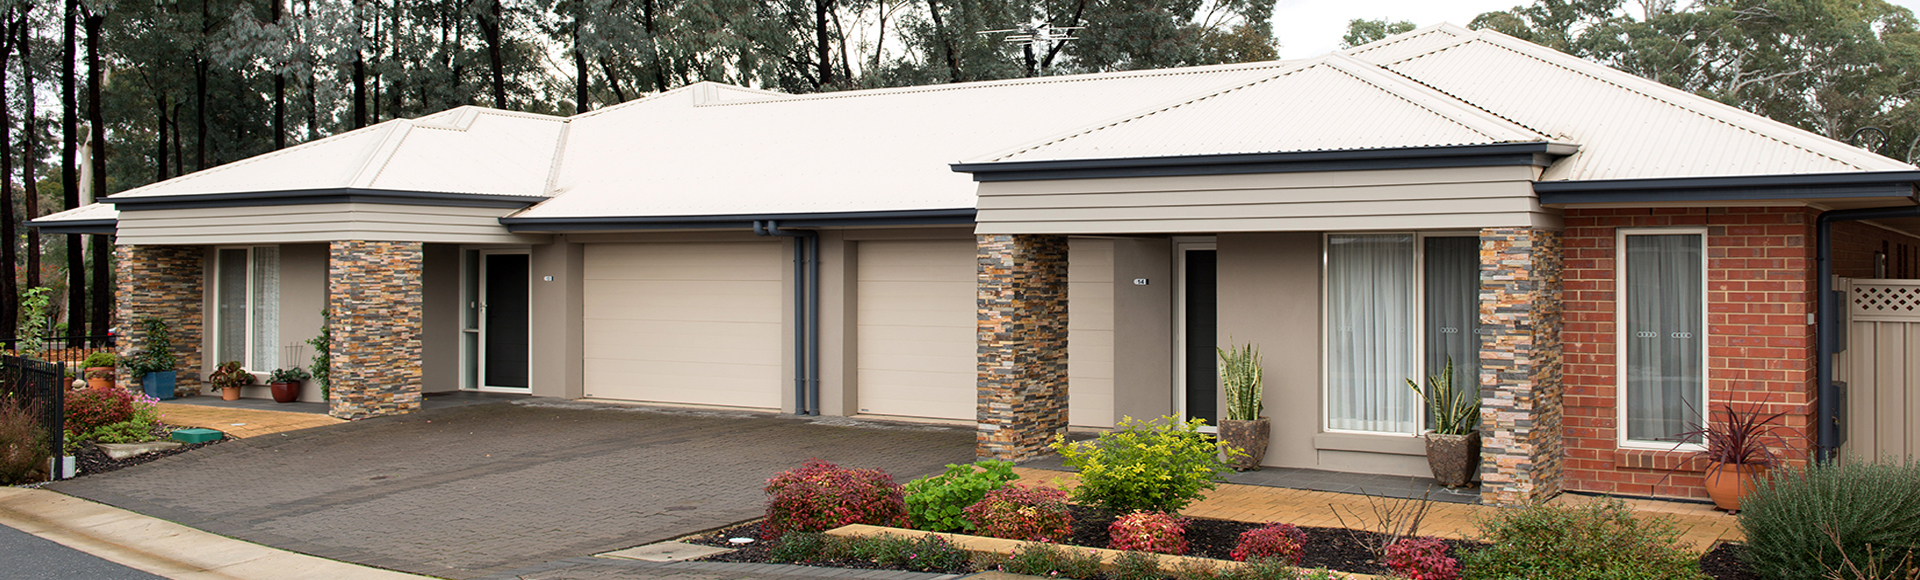 Villas with adjoining garage